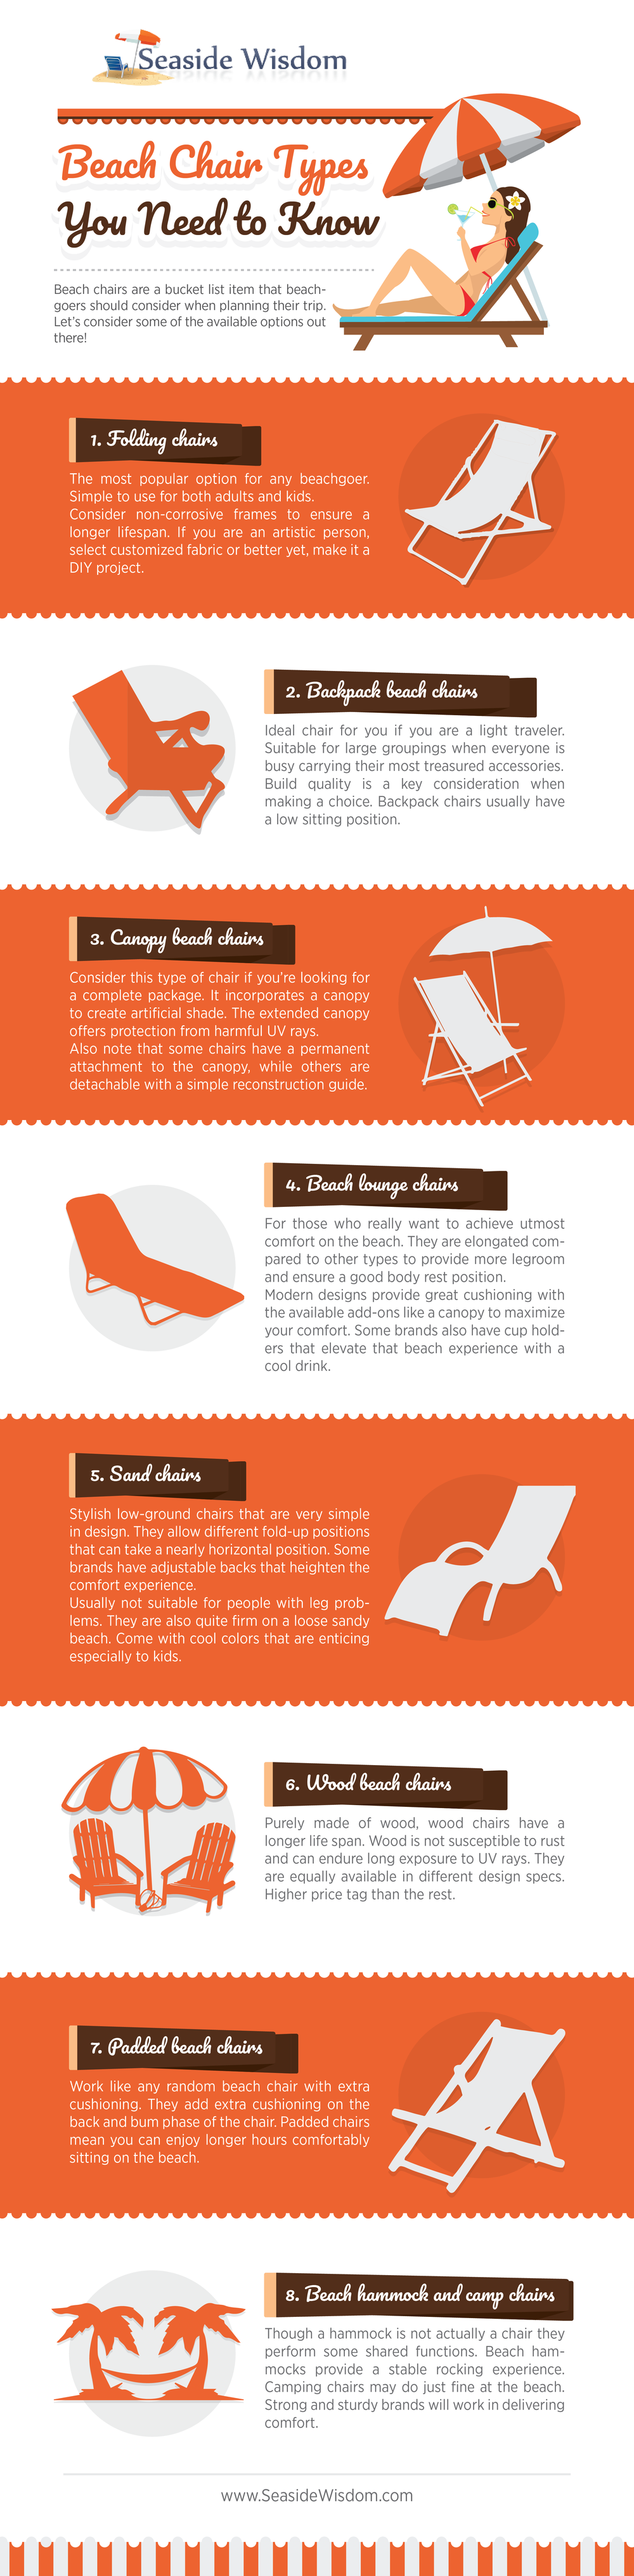 Beach Chairs Types